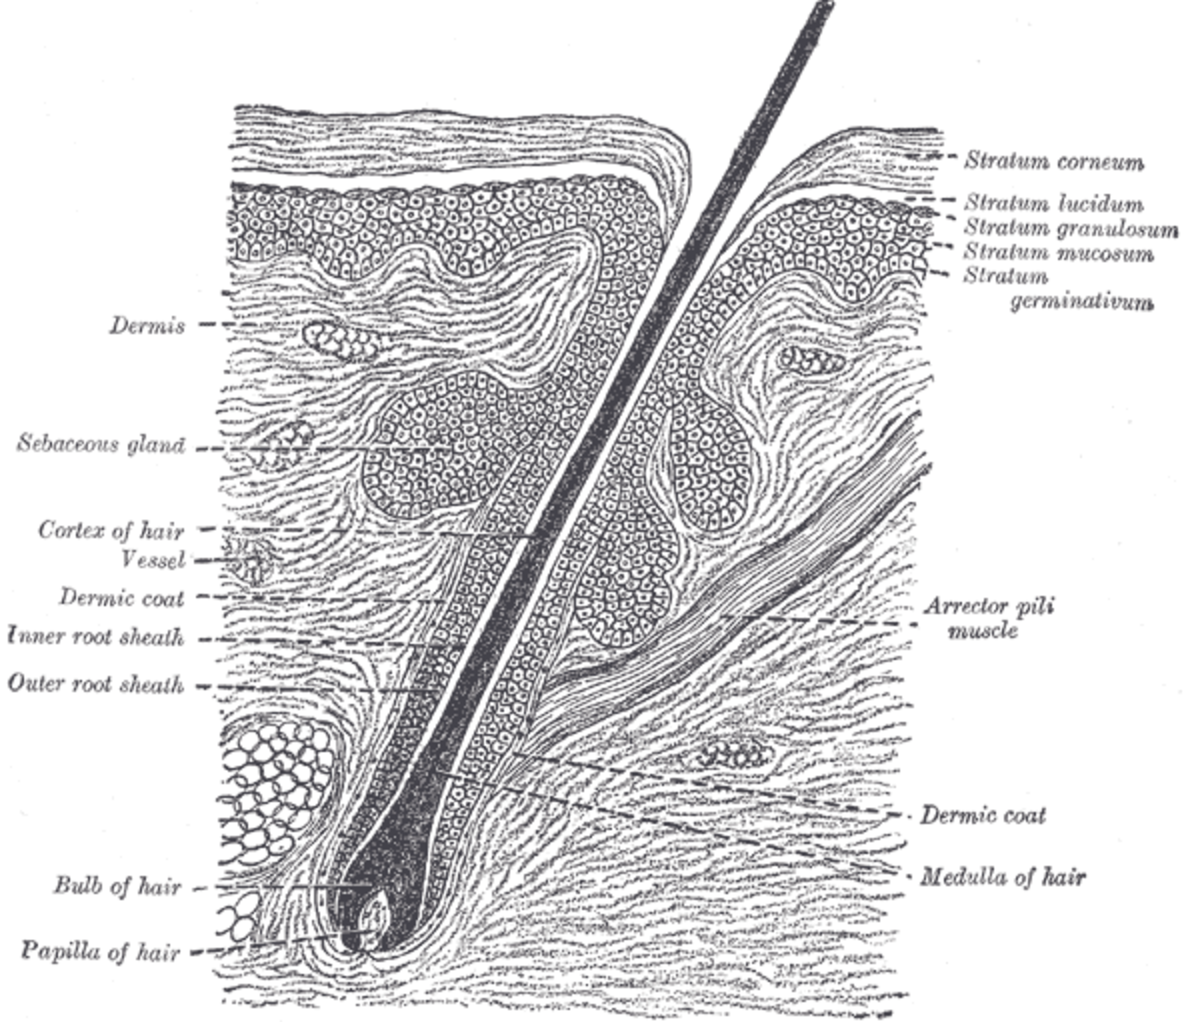 Gray's Anatomy diagram of a hair follicle from 1918. Bartleby.com: Gray's Anatomy, Plate 944